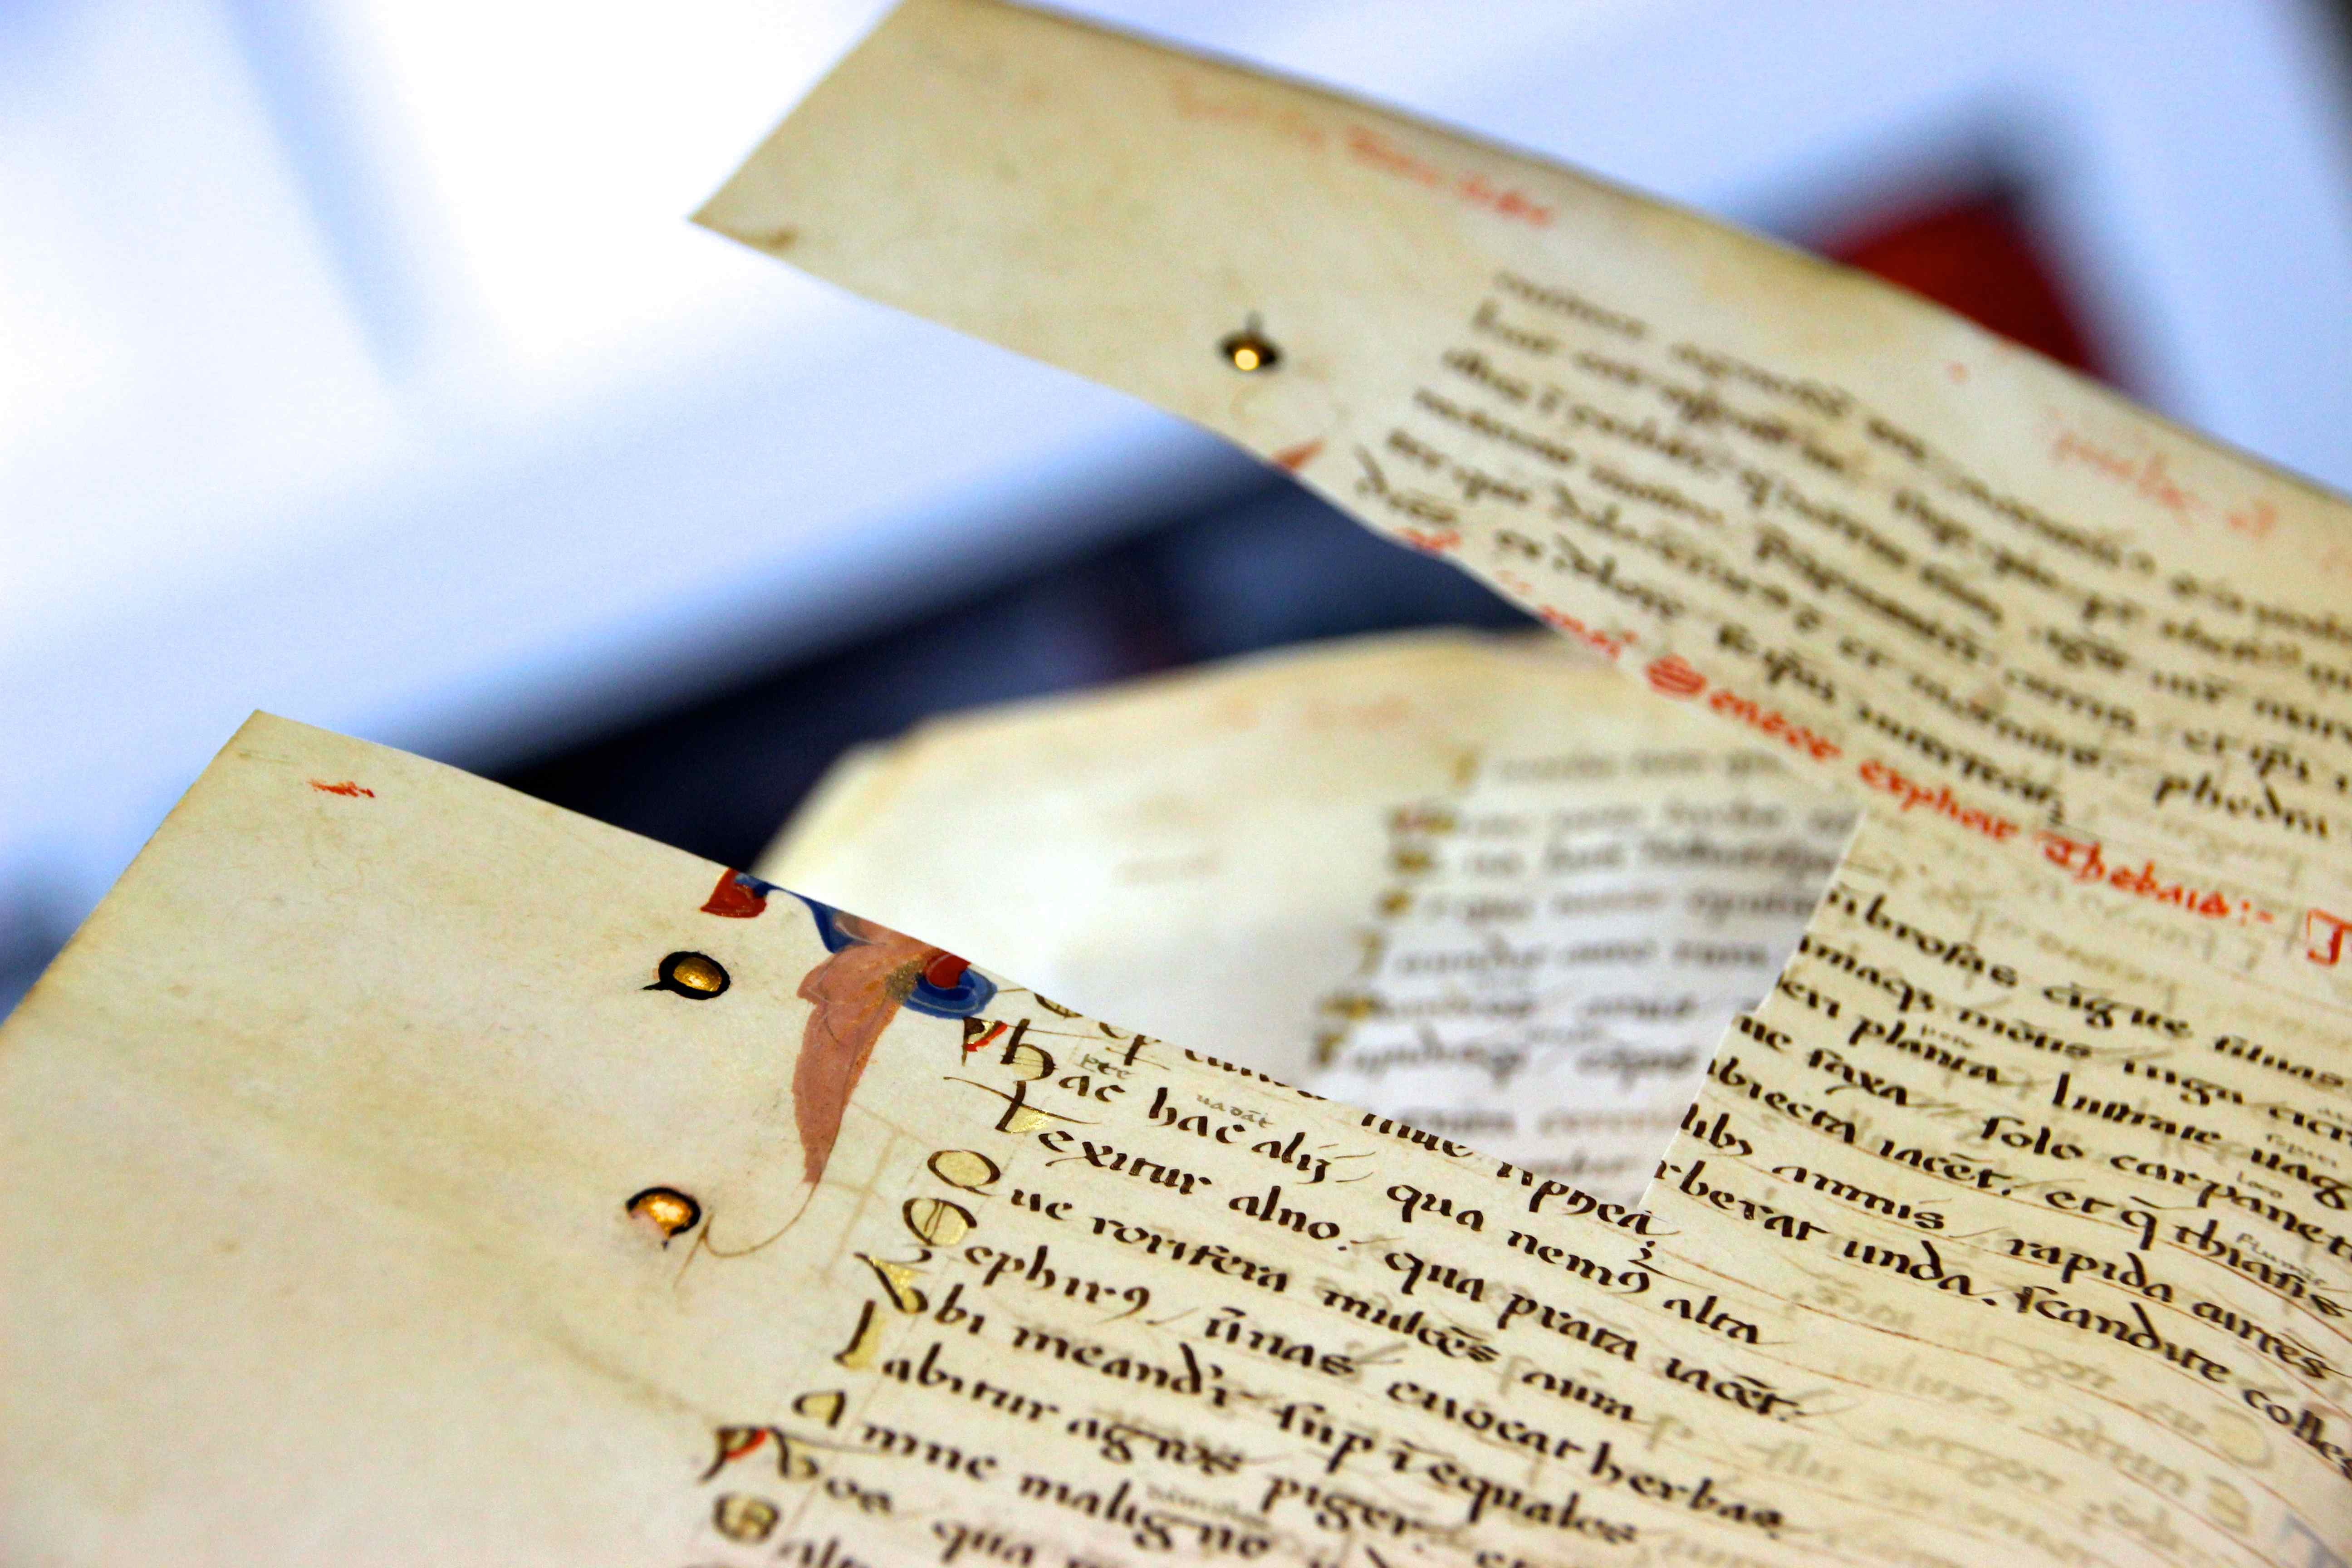 What did people use to write with in the 14th century?